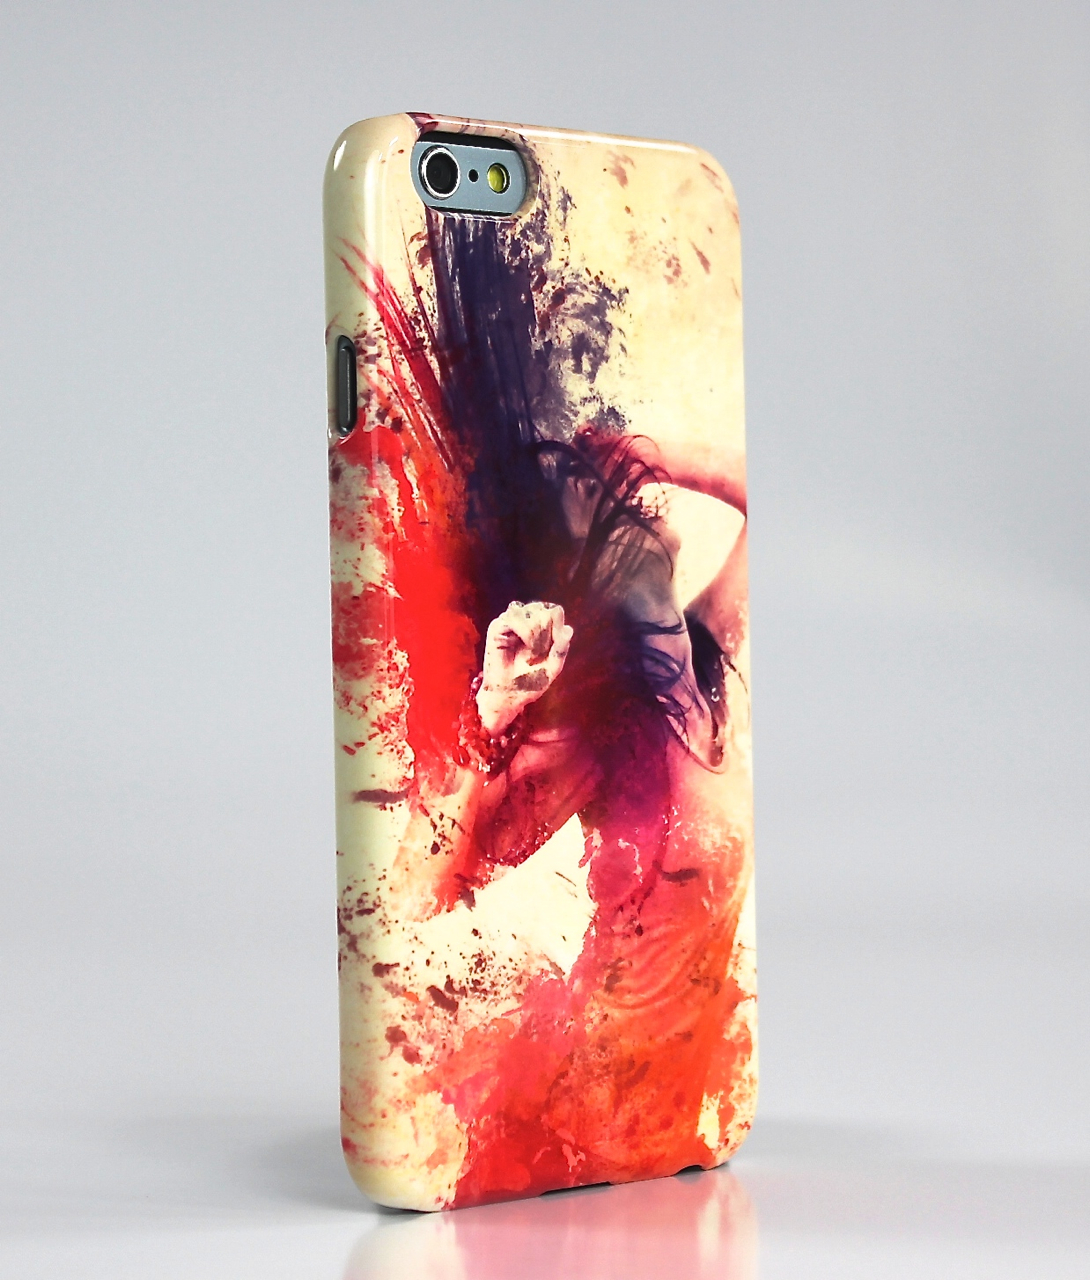 Iphone Cover Selbst Gestalten Iphone 6 Hülle Selbst Gestalten : Artcover: Iphone Cover ...